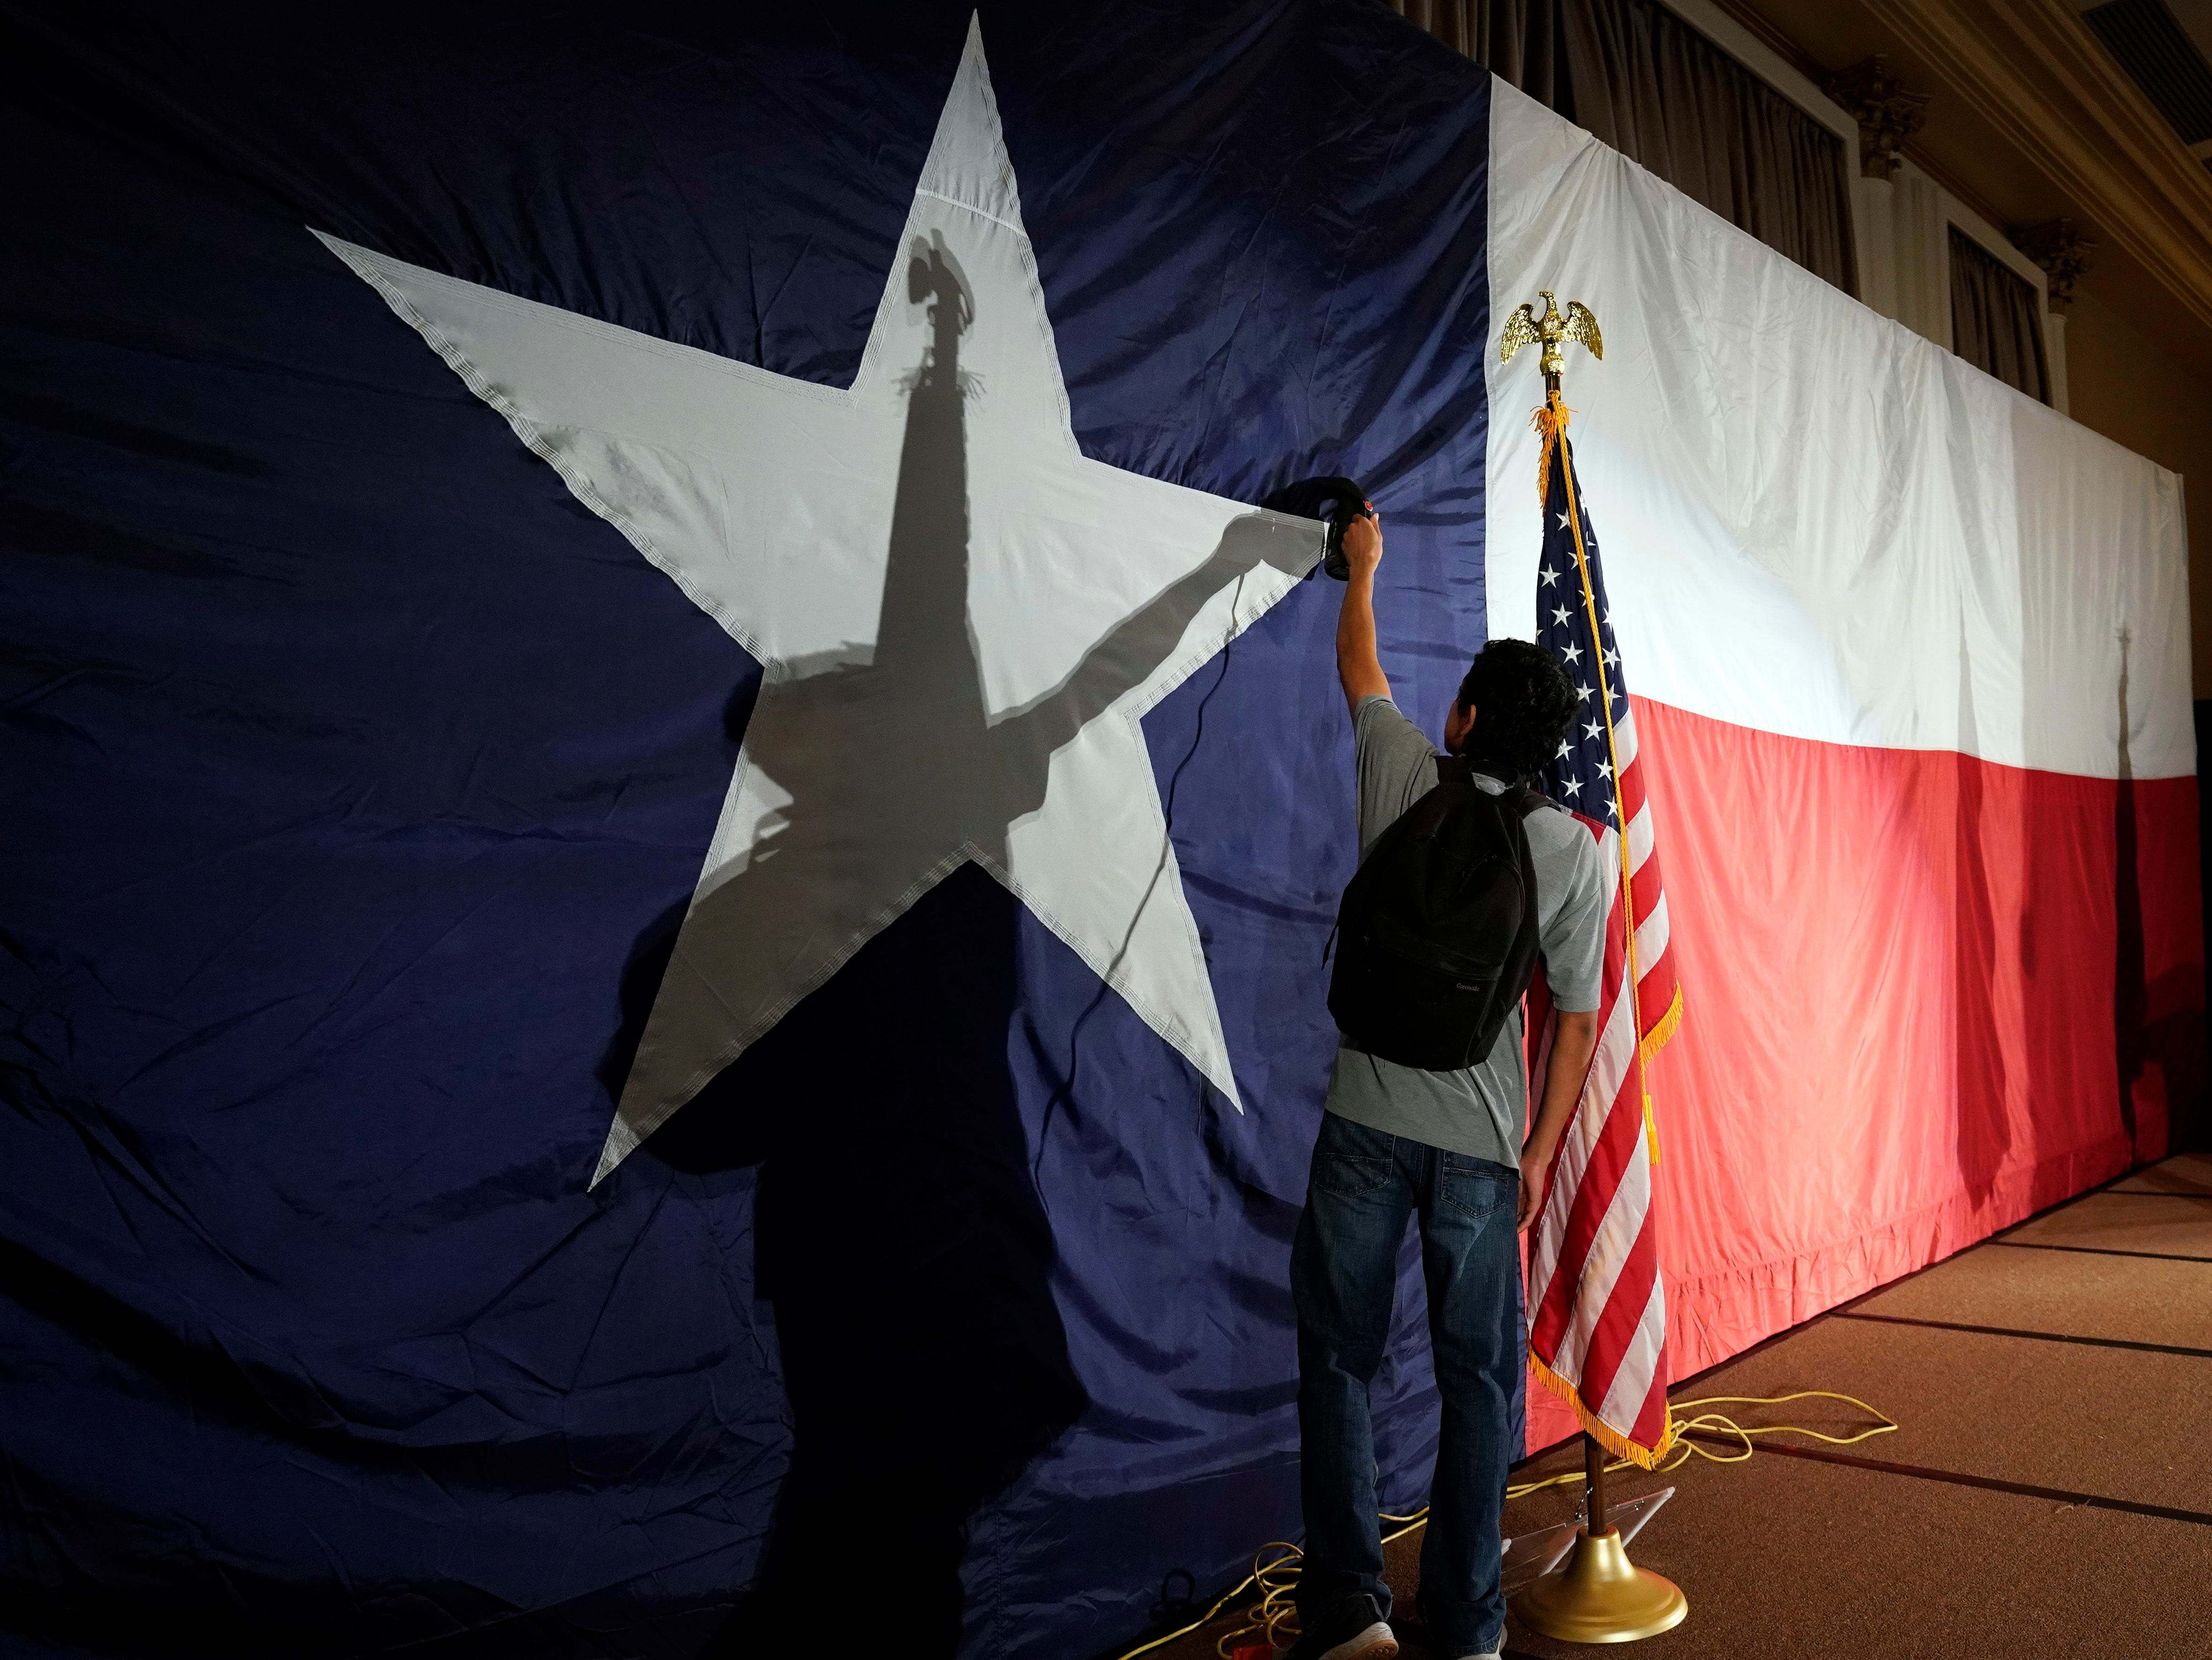 Jose Maybit Lopez, an intern for Sen. Ted Cruz, R-Texas, campaign, uses a steam iron on a Texas flag before an election night party, Tuesday, Nov. 6, 2018, in Houston. (AP Photo/David J. Phillip)